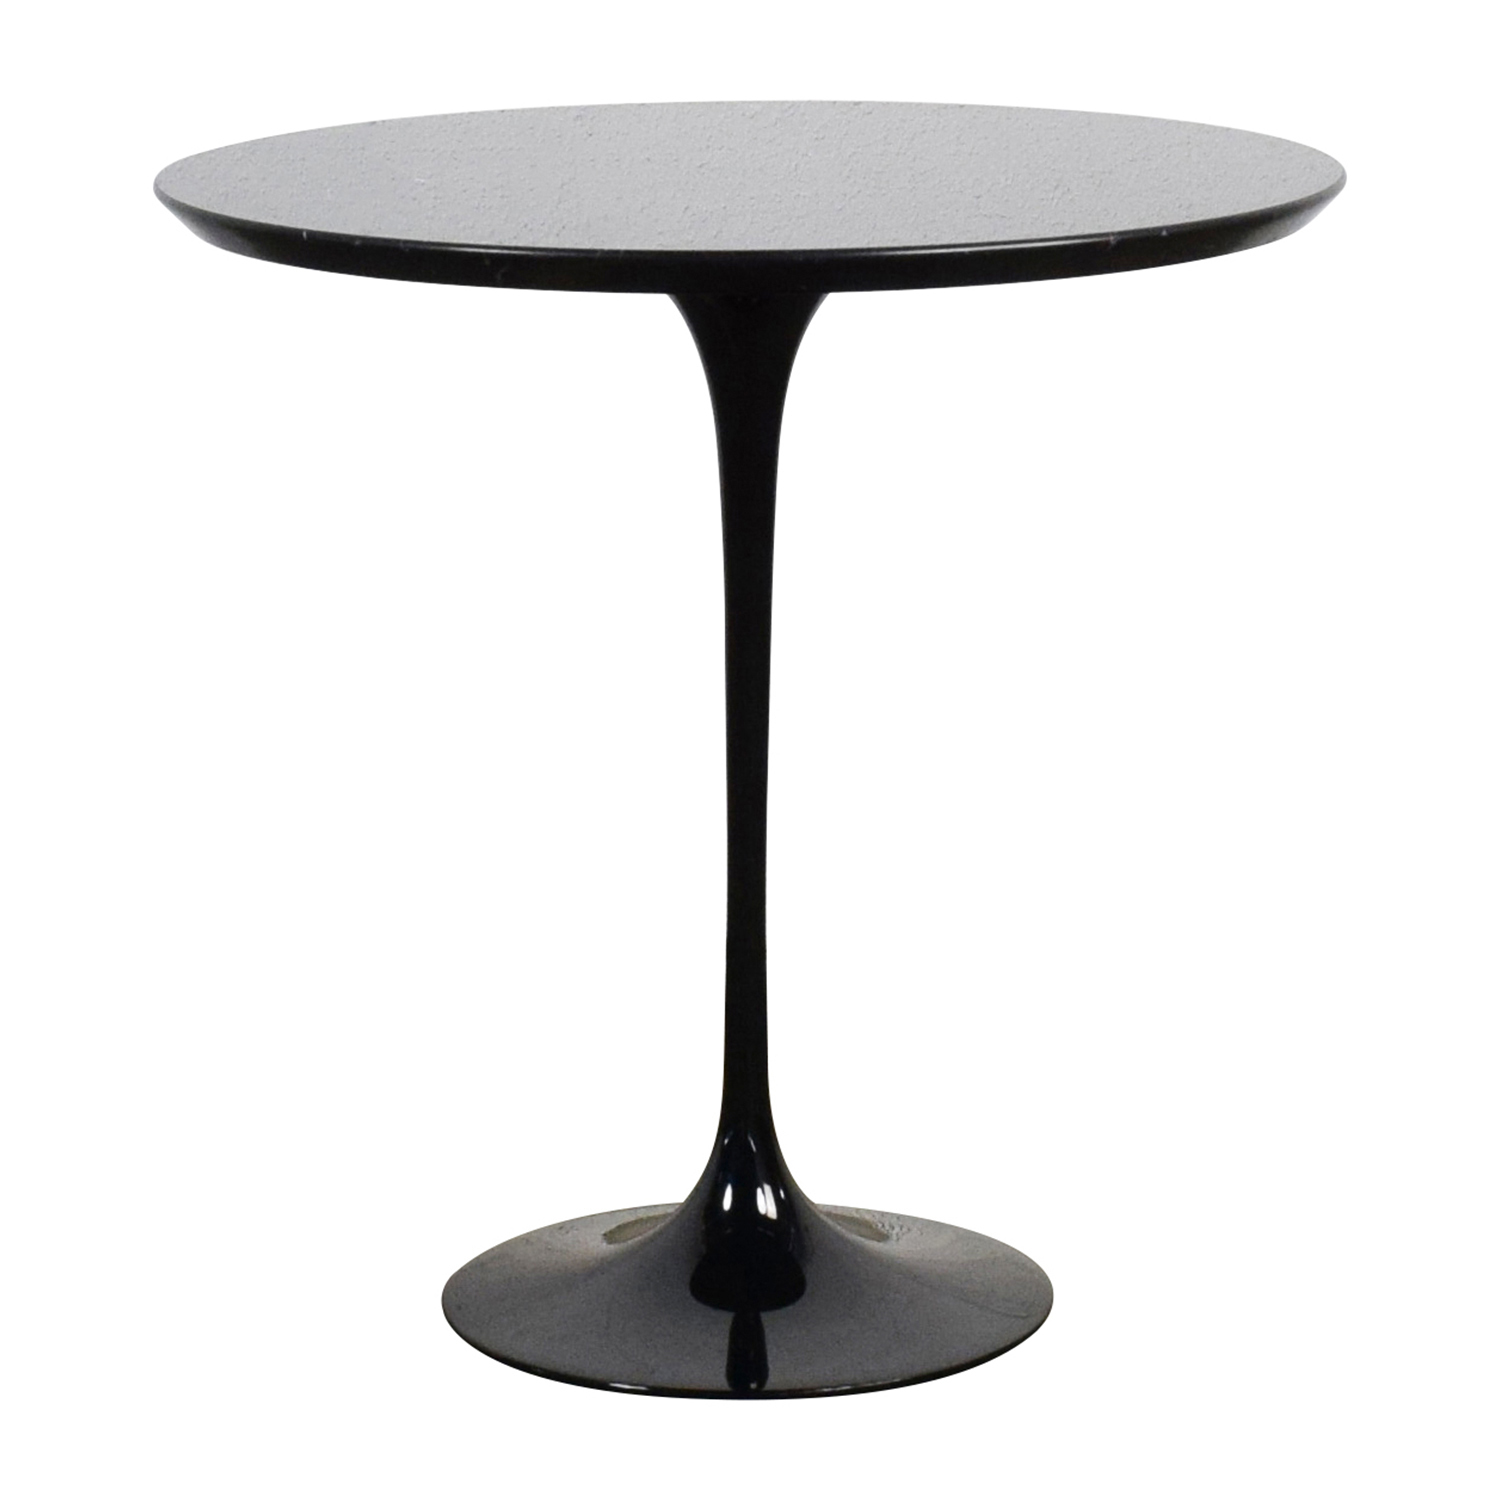 Saarinen Saarinen Black Marble End Table used